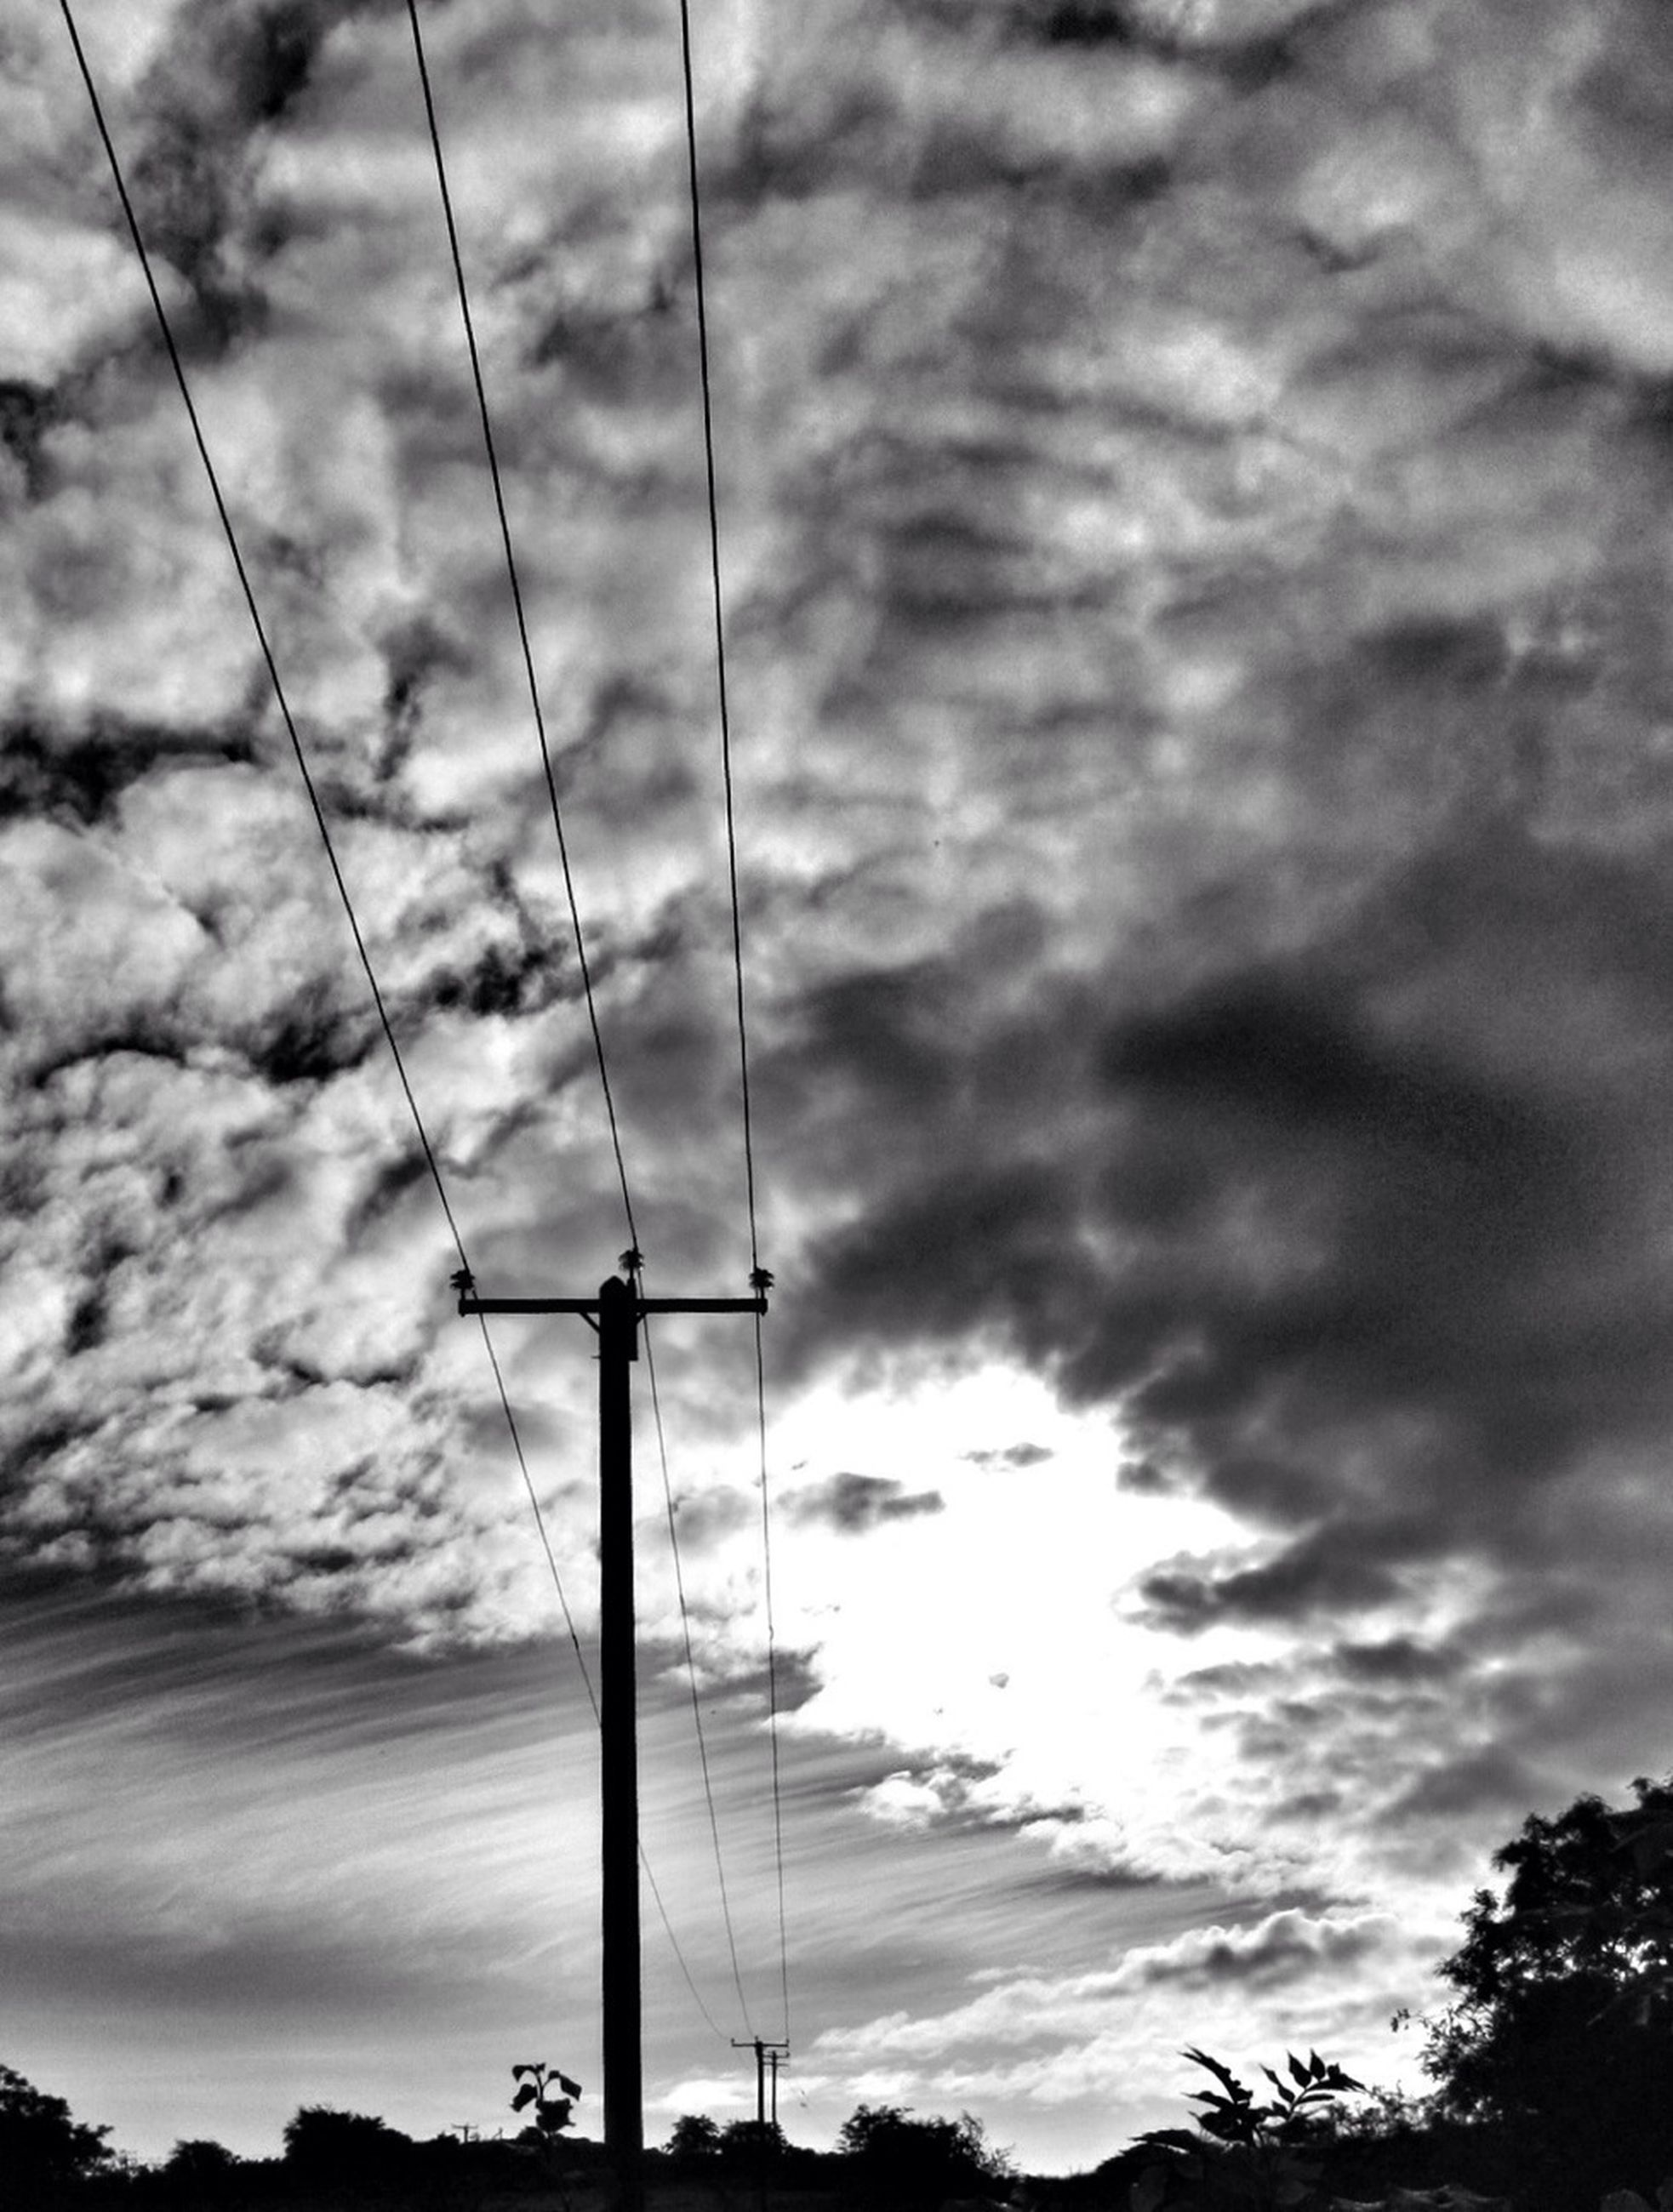 sky, low angle view, cloud - sky, cloudy, silhouette, sunset, cloud, street light, fuel and power generation, electricity pylon, power line, electricity, technology, overcast, weather, tree, pole, nature, power supply, no people